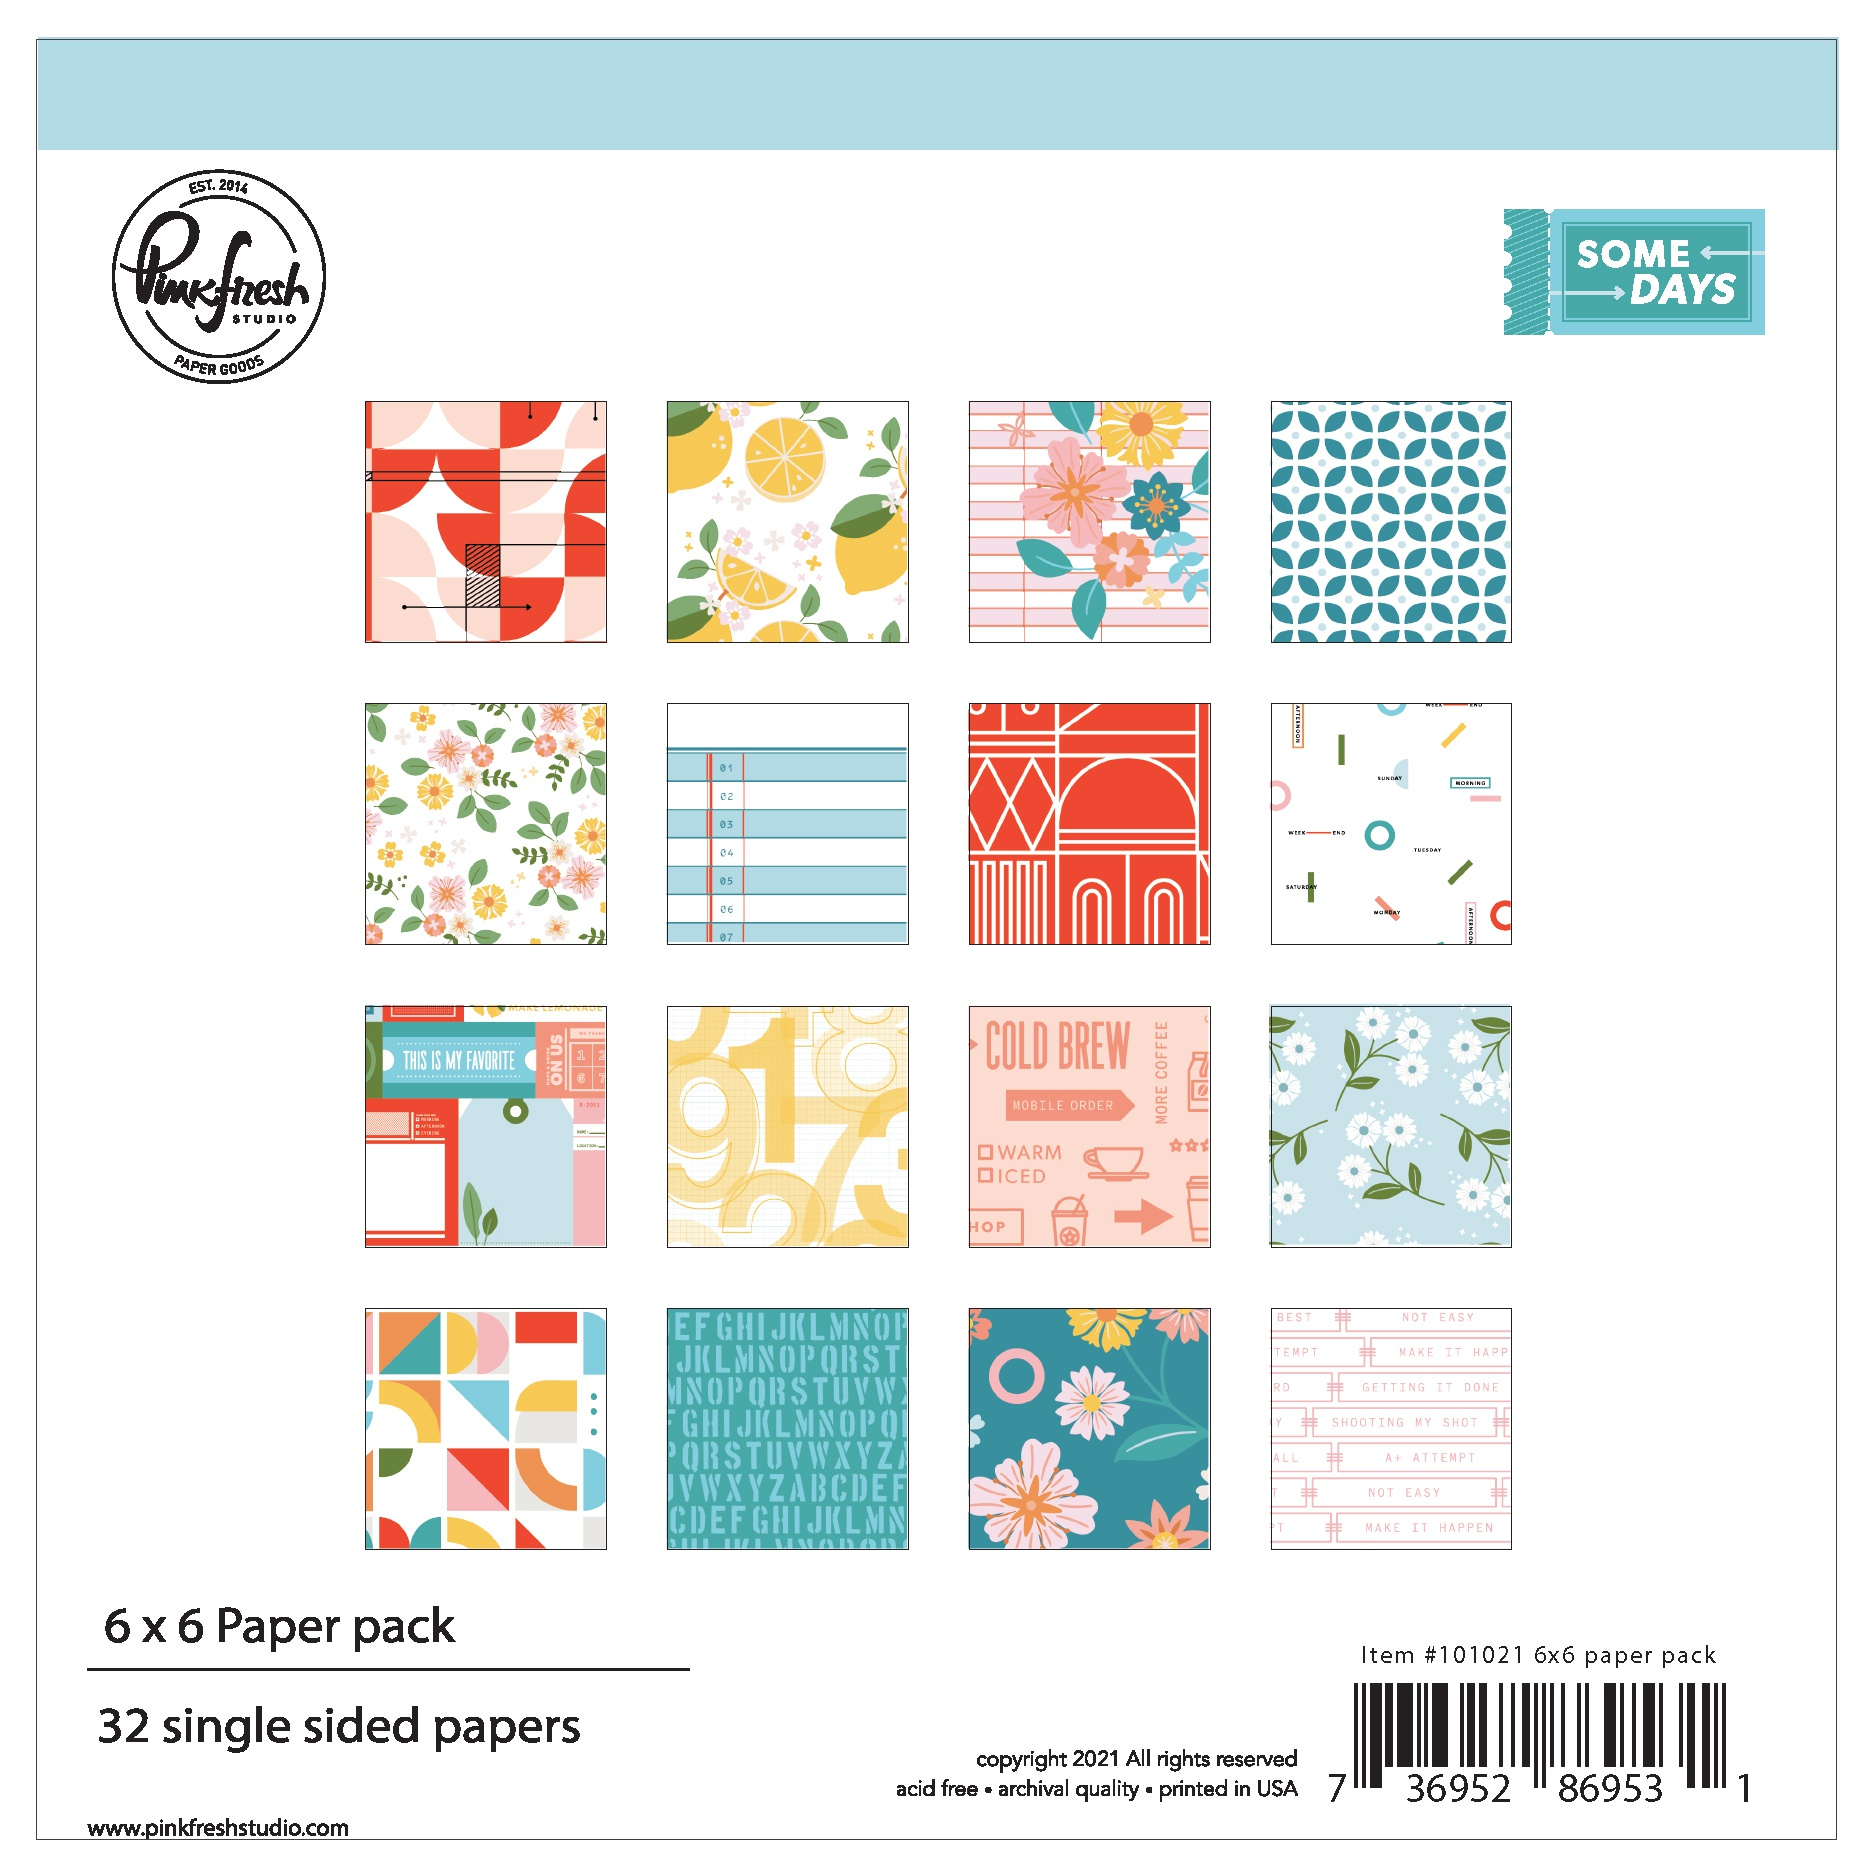 PinkFresh Studio Single-Sided Paper Pack 6X6 32/Pkg-Some Days, 16 Designs/2 Ea...